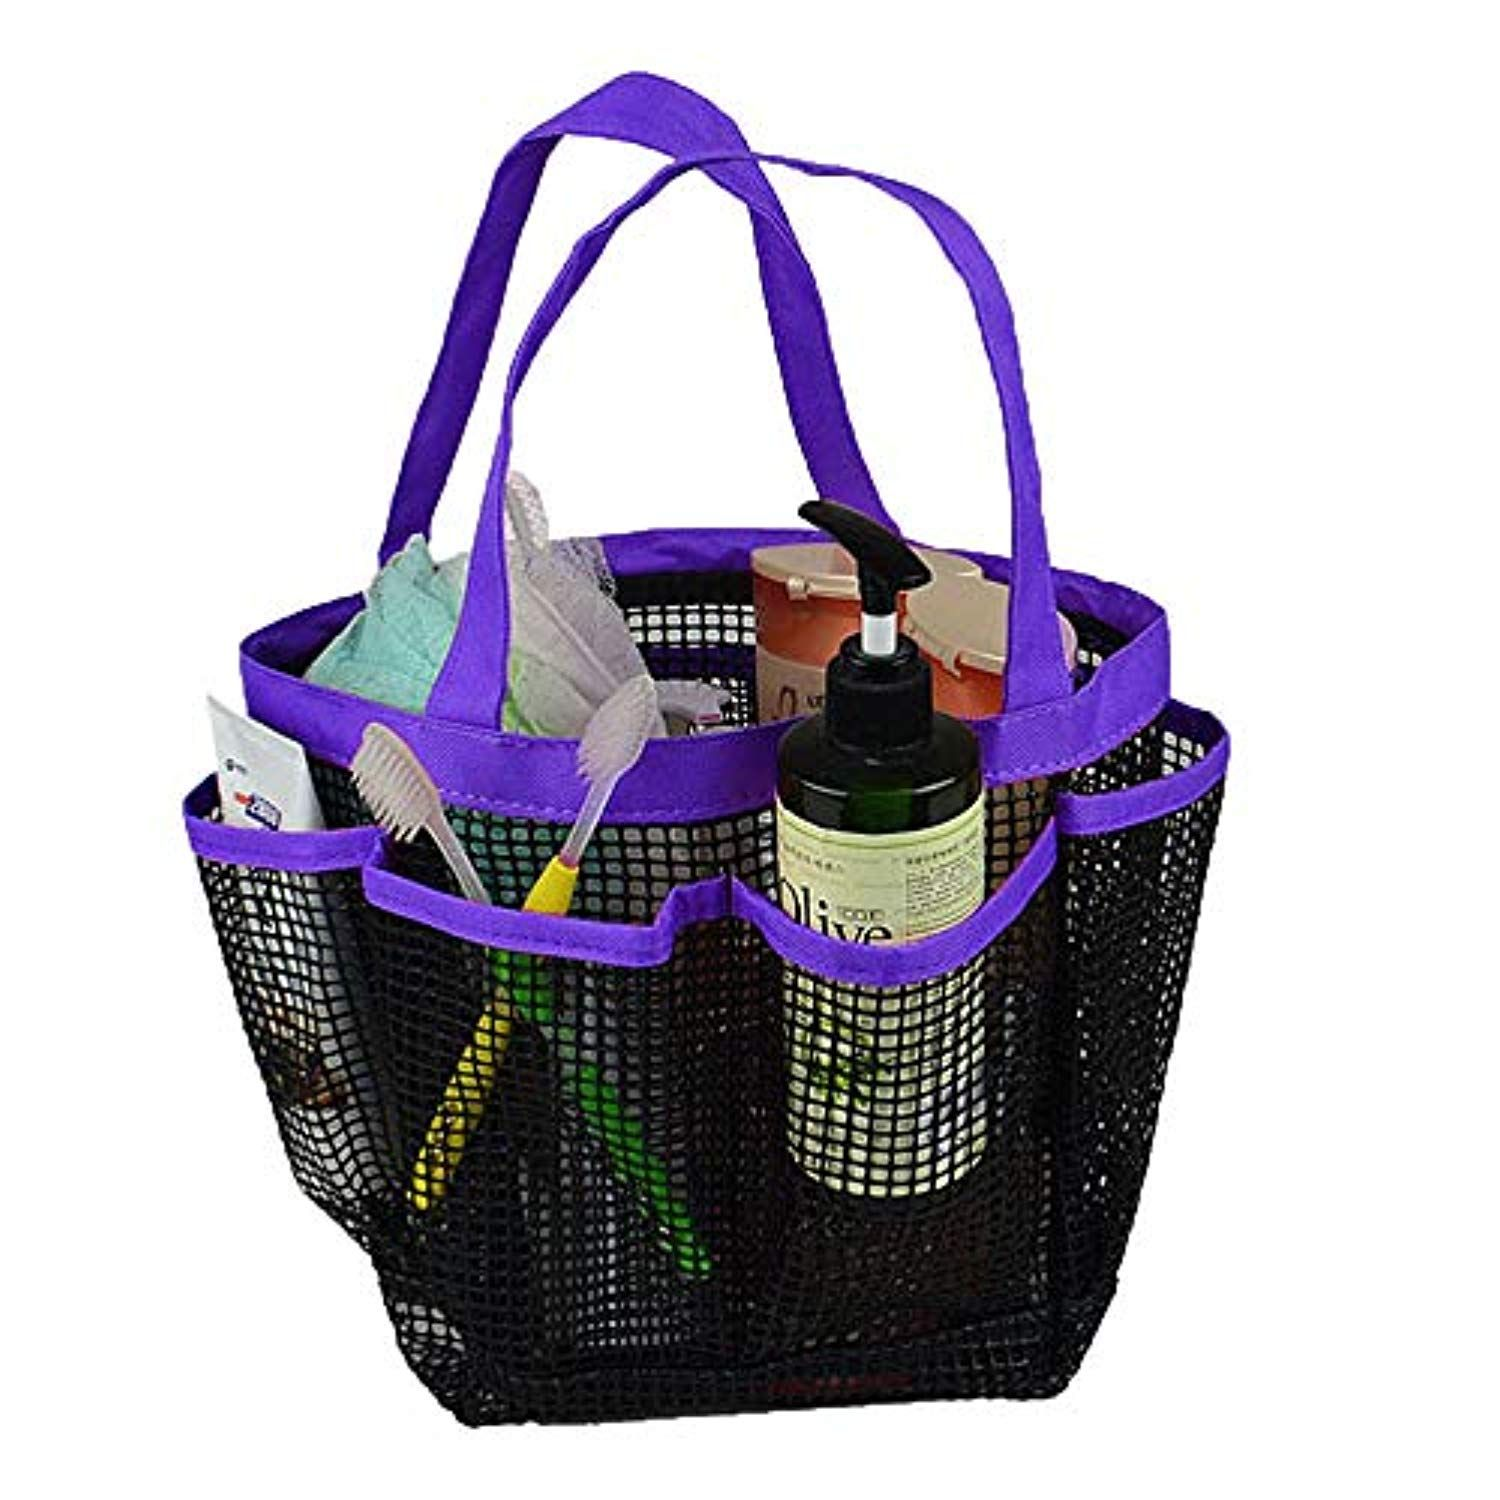 Mesh Shower Caddy 1 Pc Portable Quick Dry Shower Tote Bag Toiletry And Bath Organizer Shower Basket Show Shower Caddy Shower Basket Bath Organization